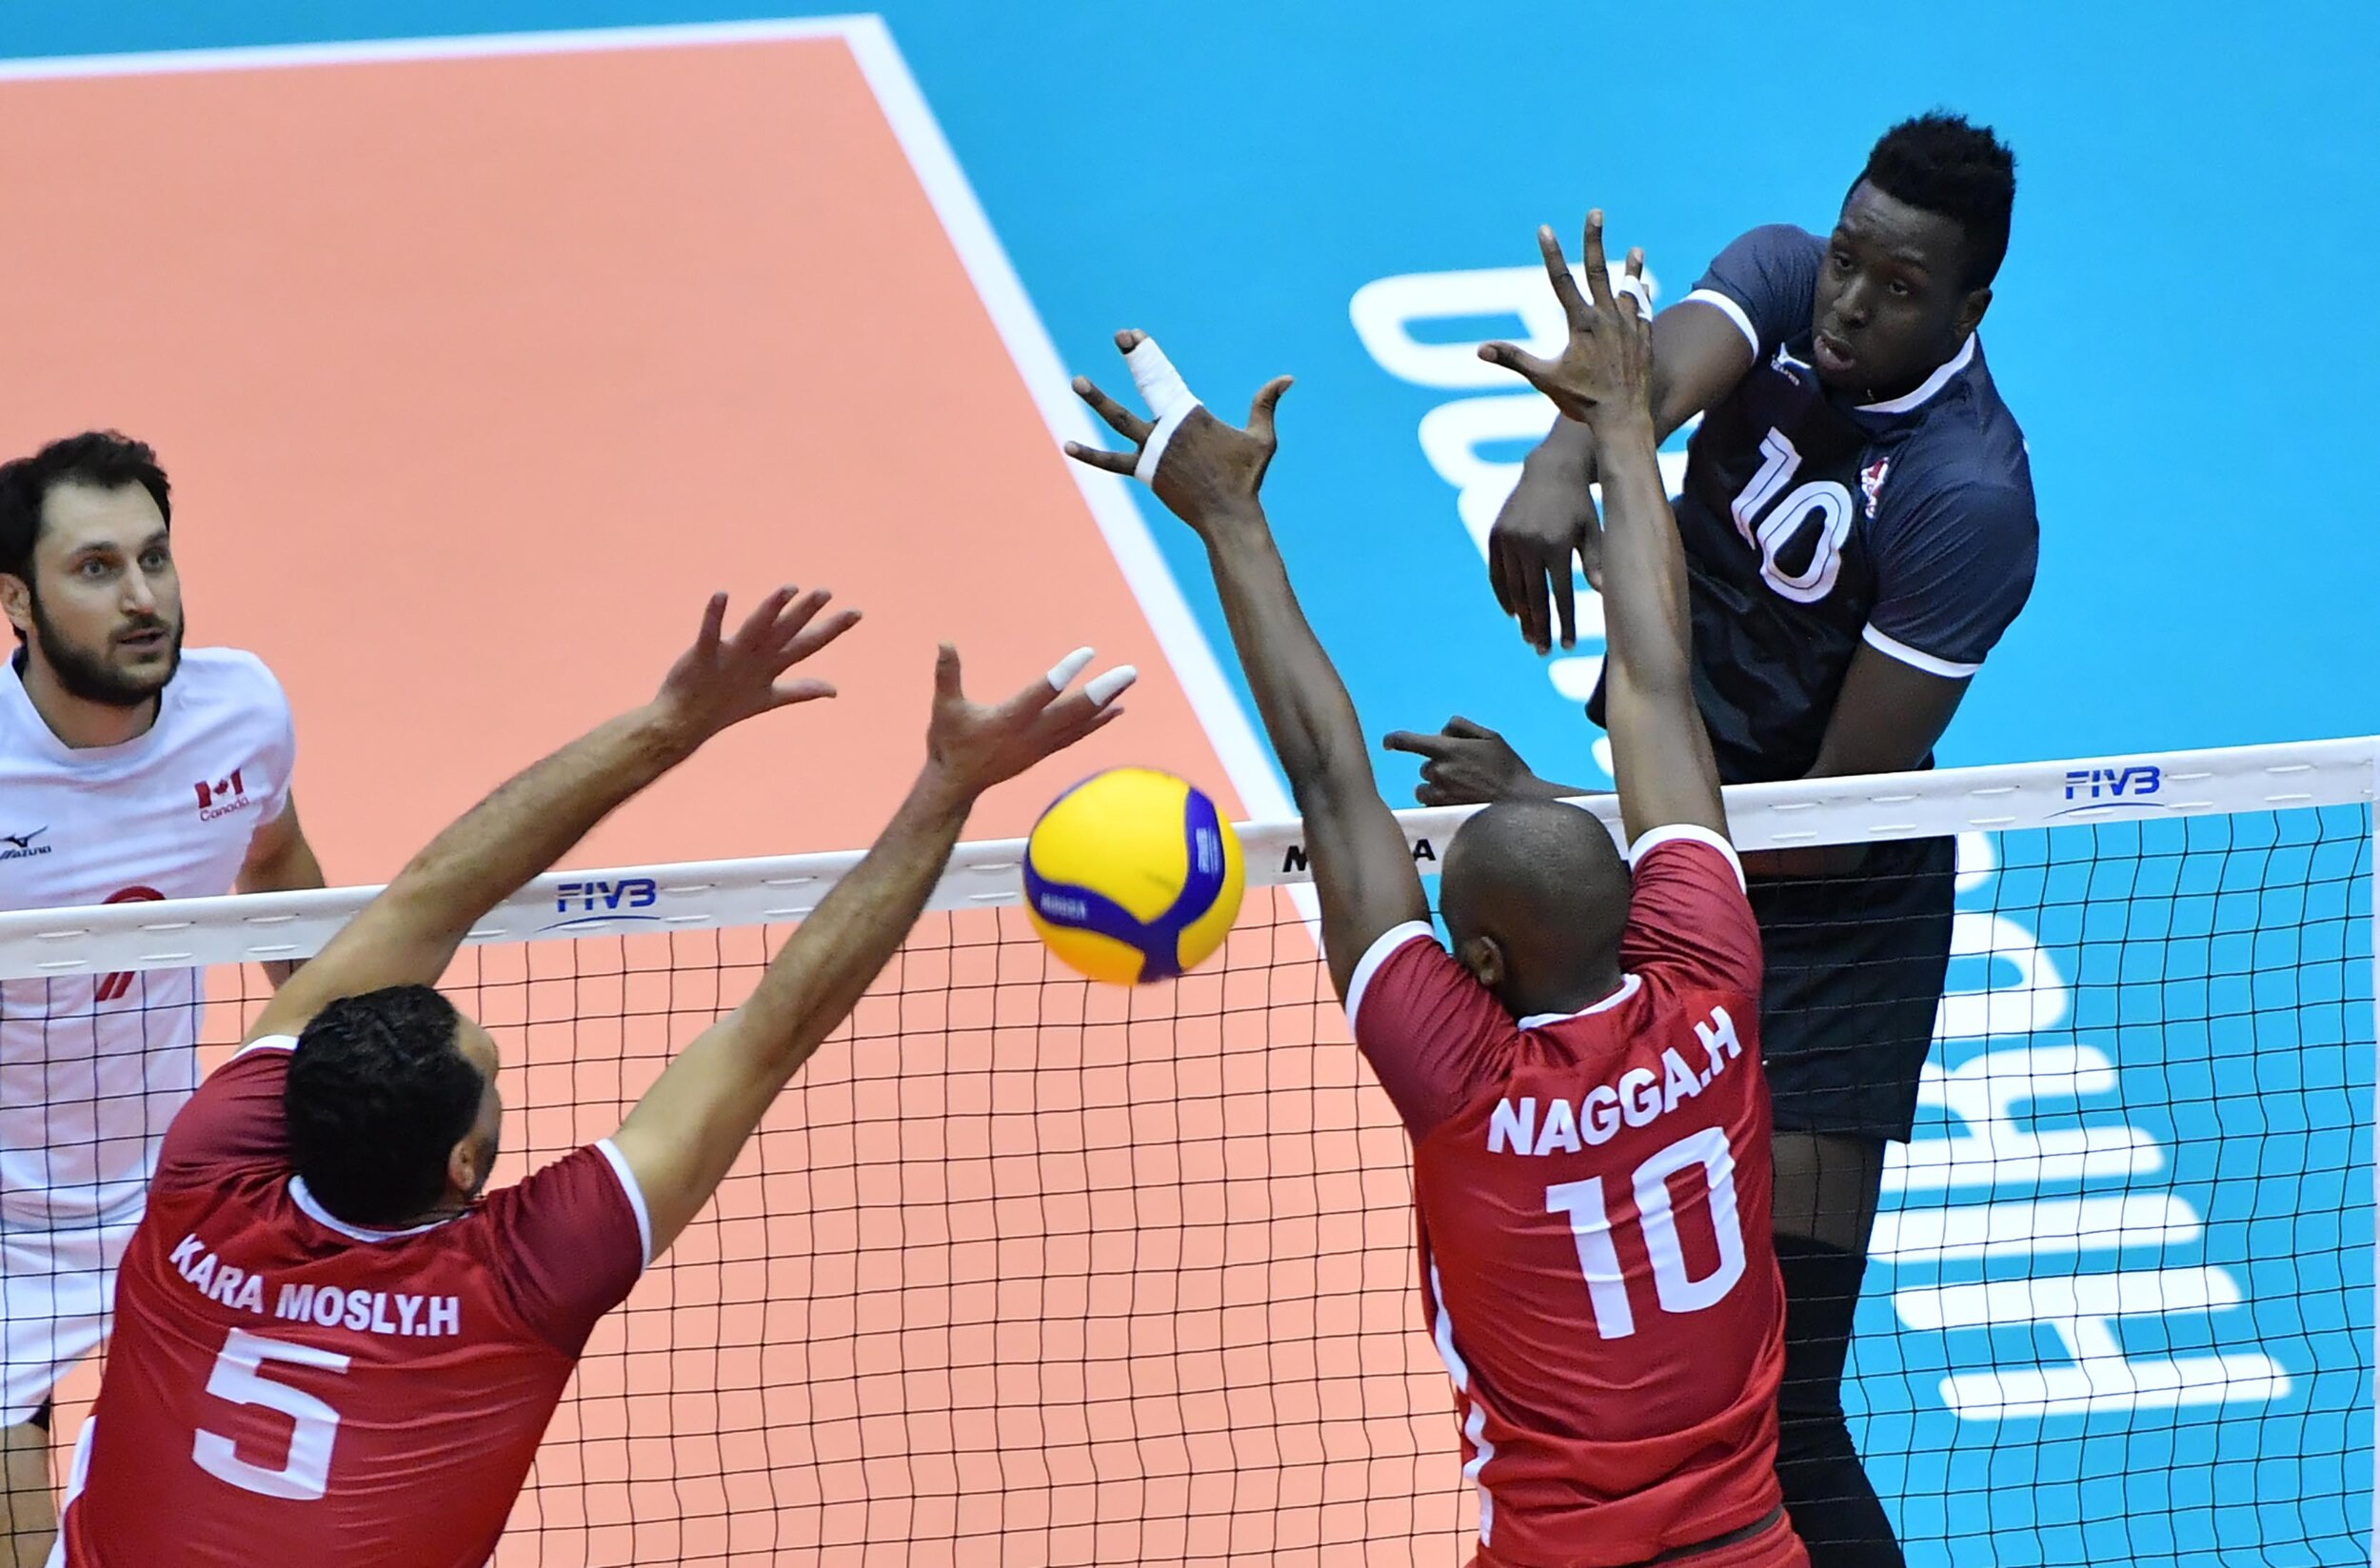 Sharone Vernon-Evans had his biggest night of the tournament, leading Canada with 23 points. Photo: FIVB